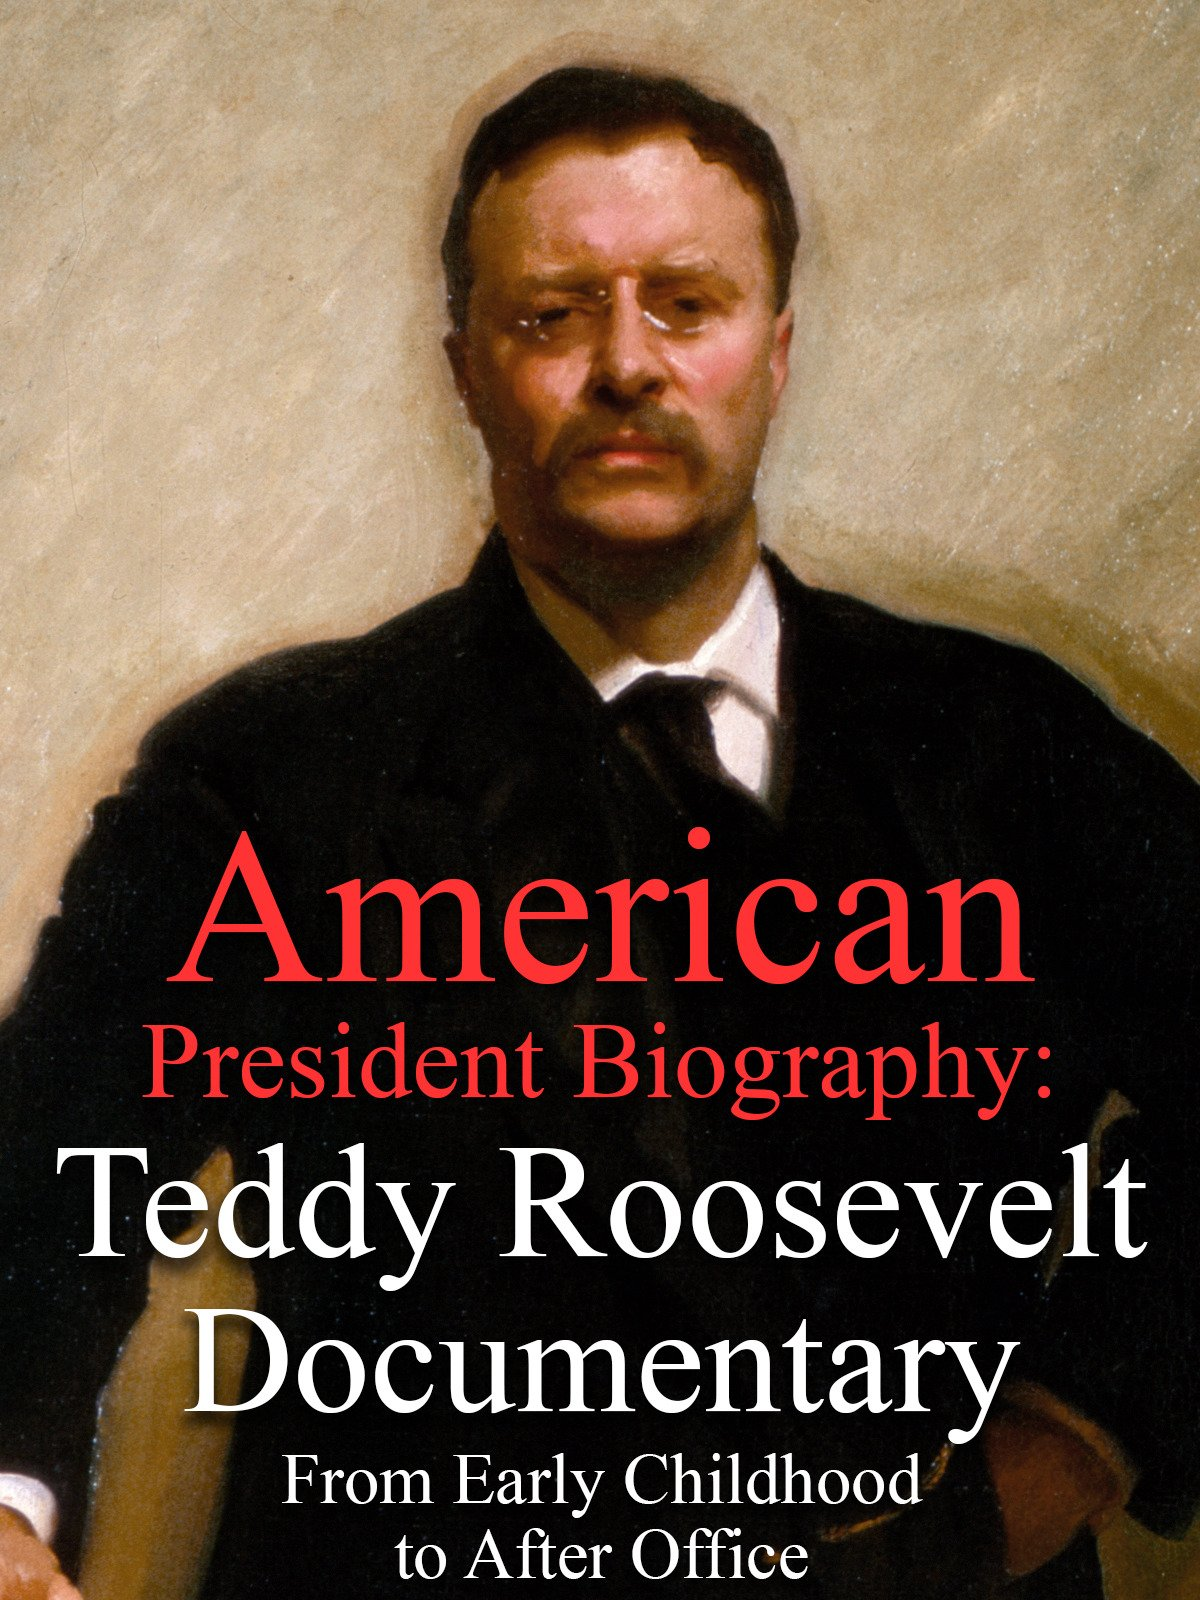 American President Biography: Teddy Roosevelt Documentary From Early Childhood to After Office